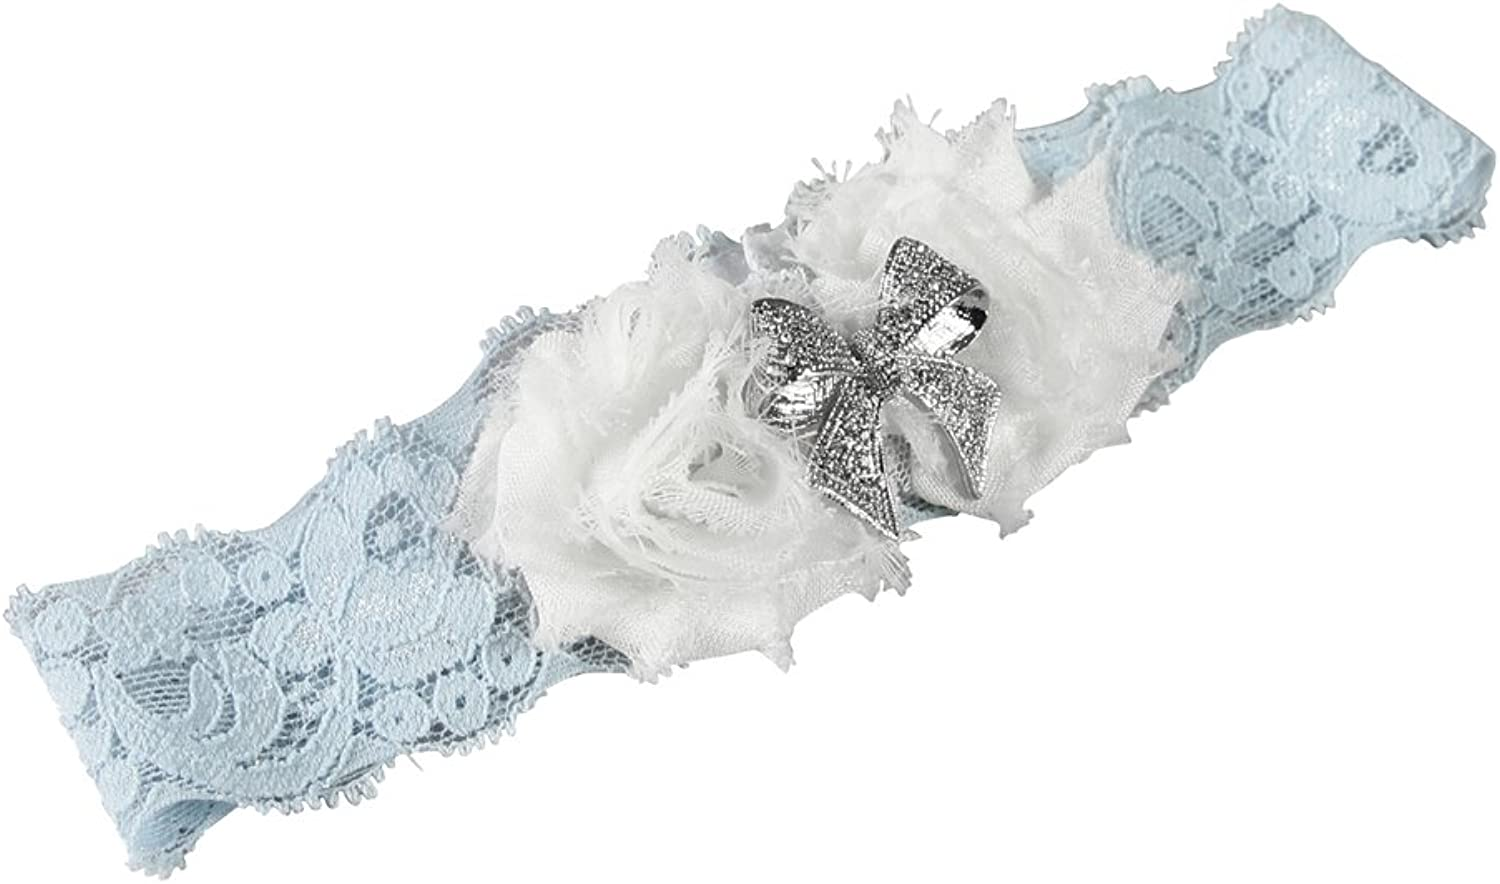 Ivy Lane Design Garter, Small, Anastasia Lace, bluee, White and Silver